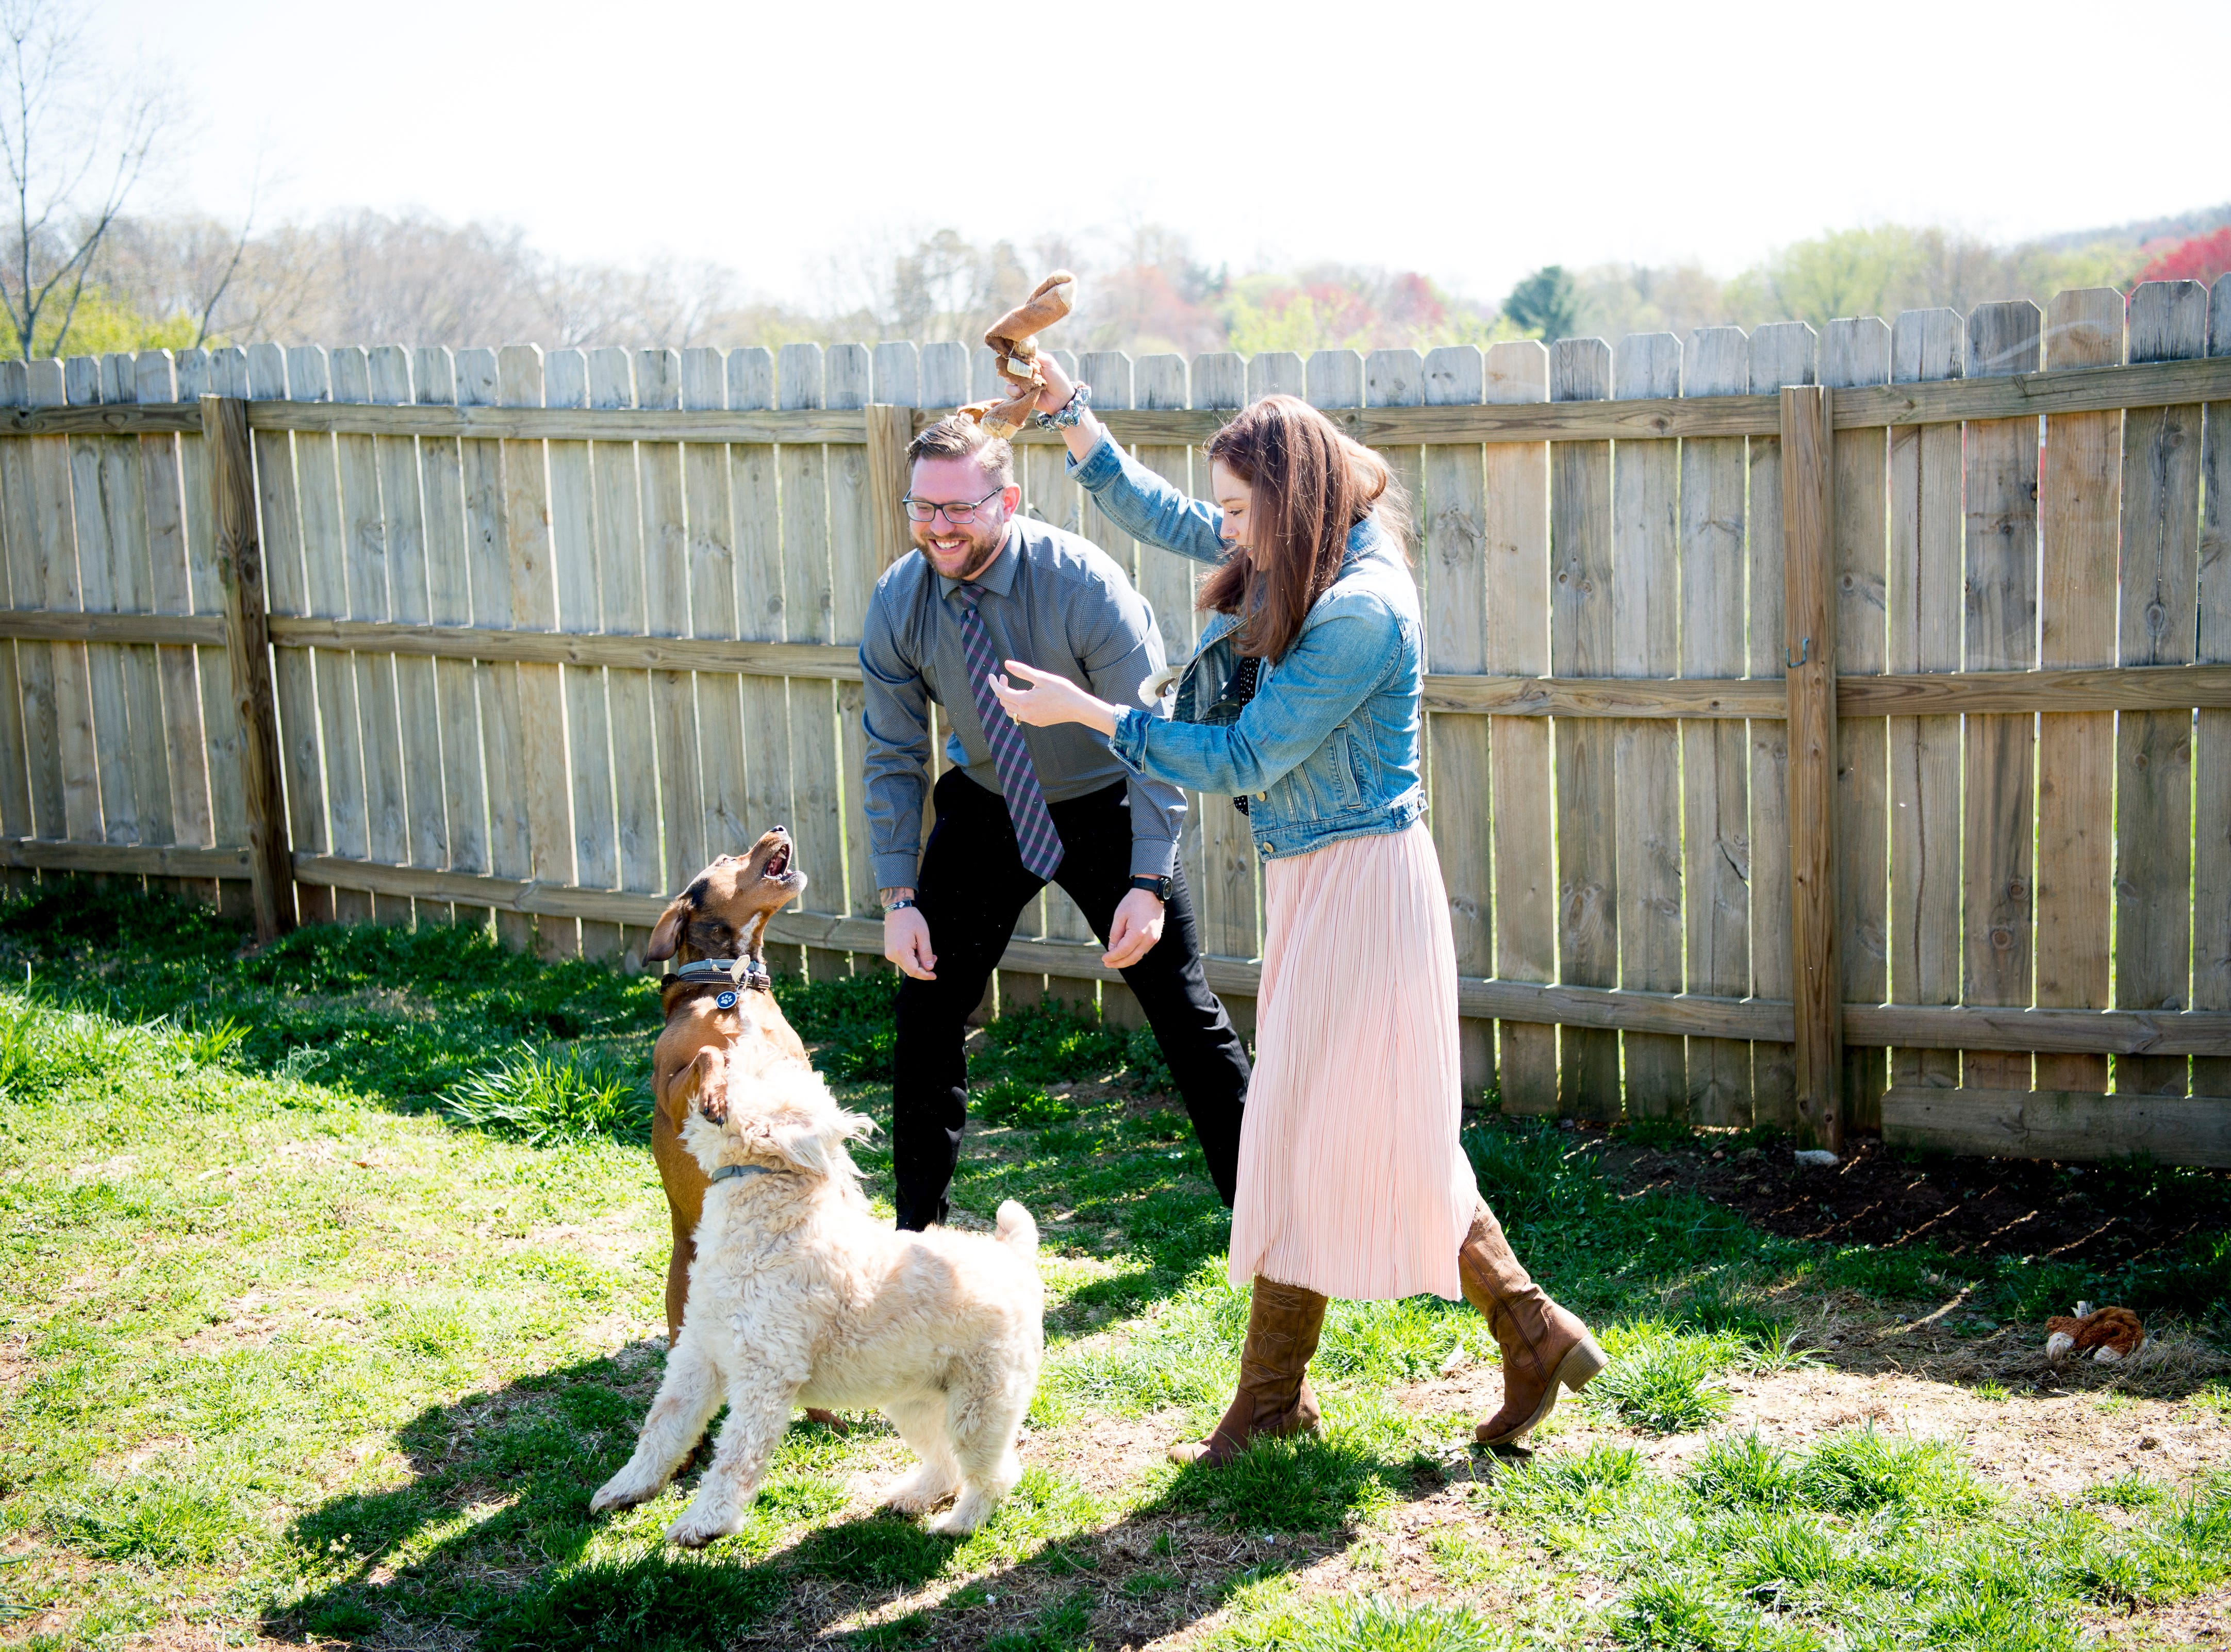 Austin Miller and Trissa Gurney play with their dogs Nessie, a wheaten terrier, and Dobby, a mountain cur, in the backyard of their home off McKamey Road west of Knoxville, Tennessee on Wednesday, April 3, 2019. After months of house searching, the couple decided to move into their current home last December after making some small compromises like being further away from downtown.